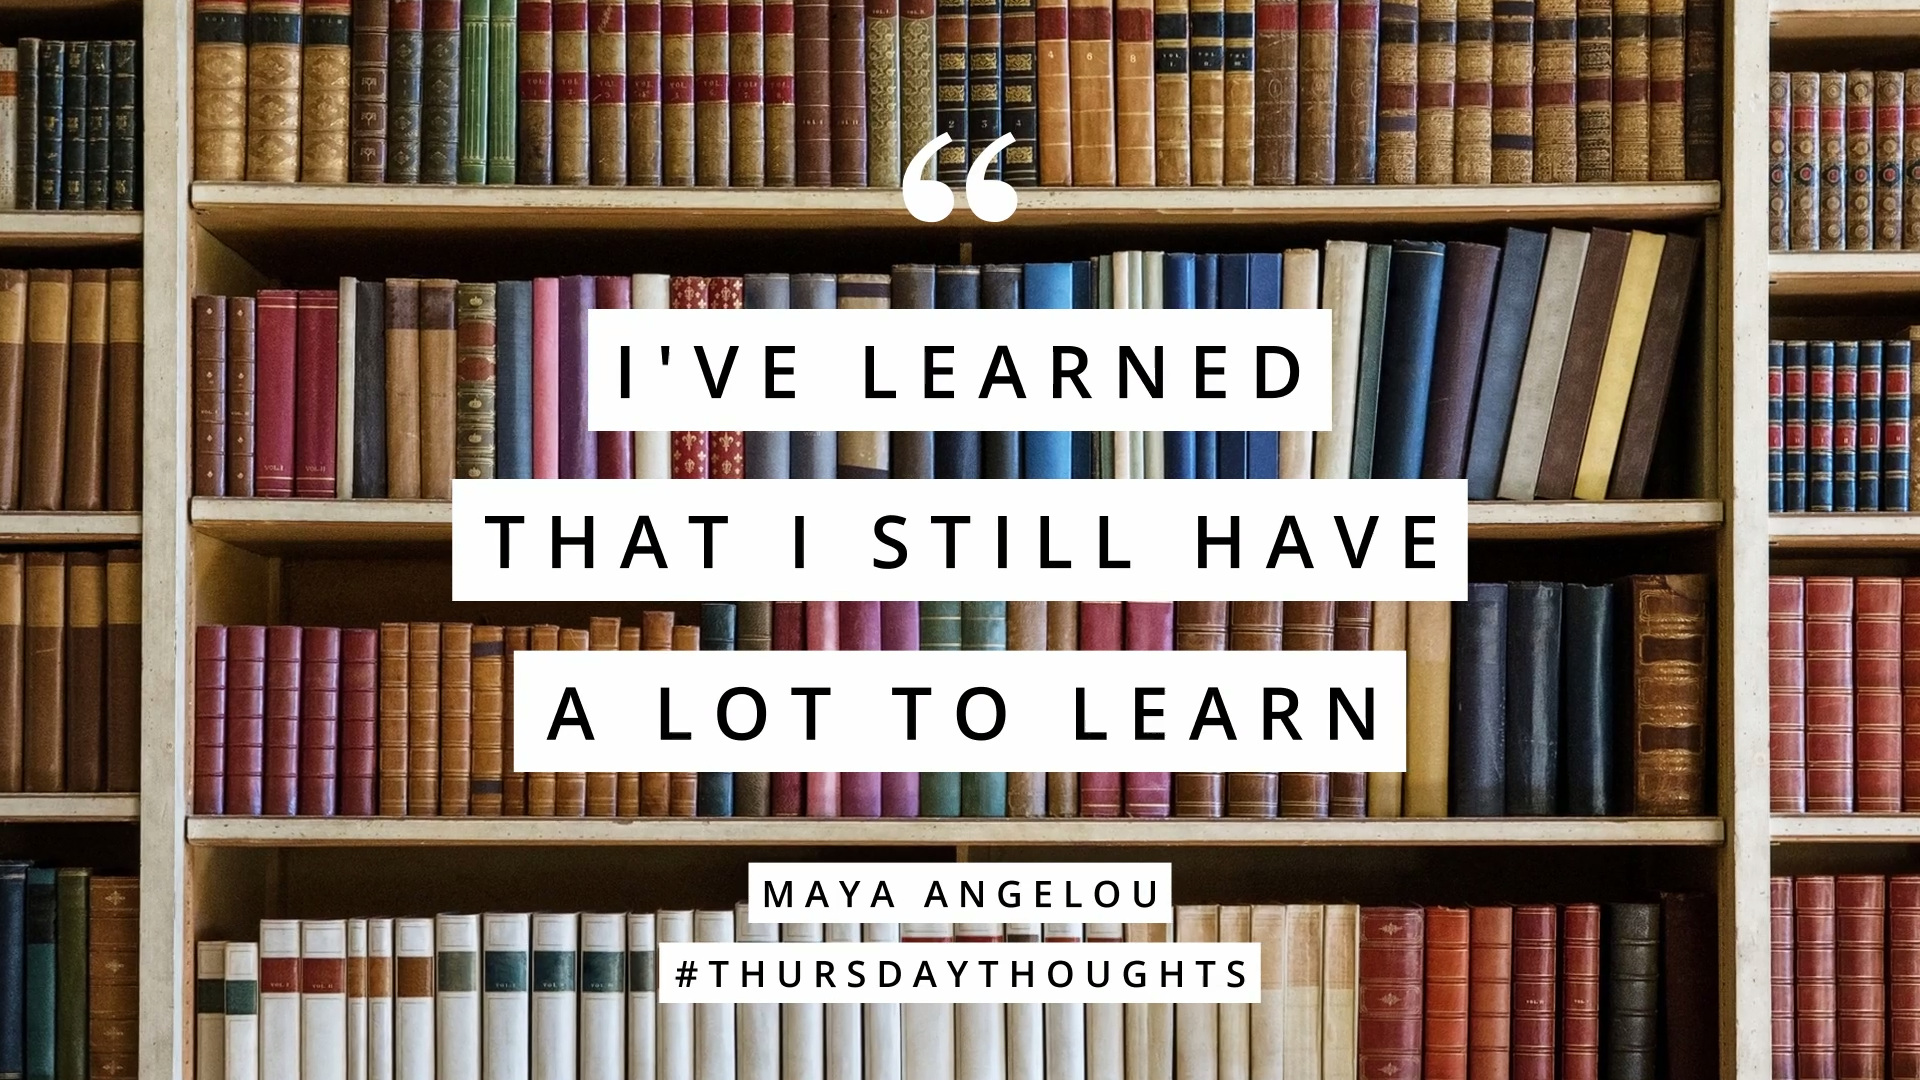 Thursday Thoughts Quote